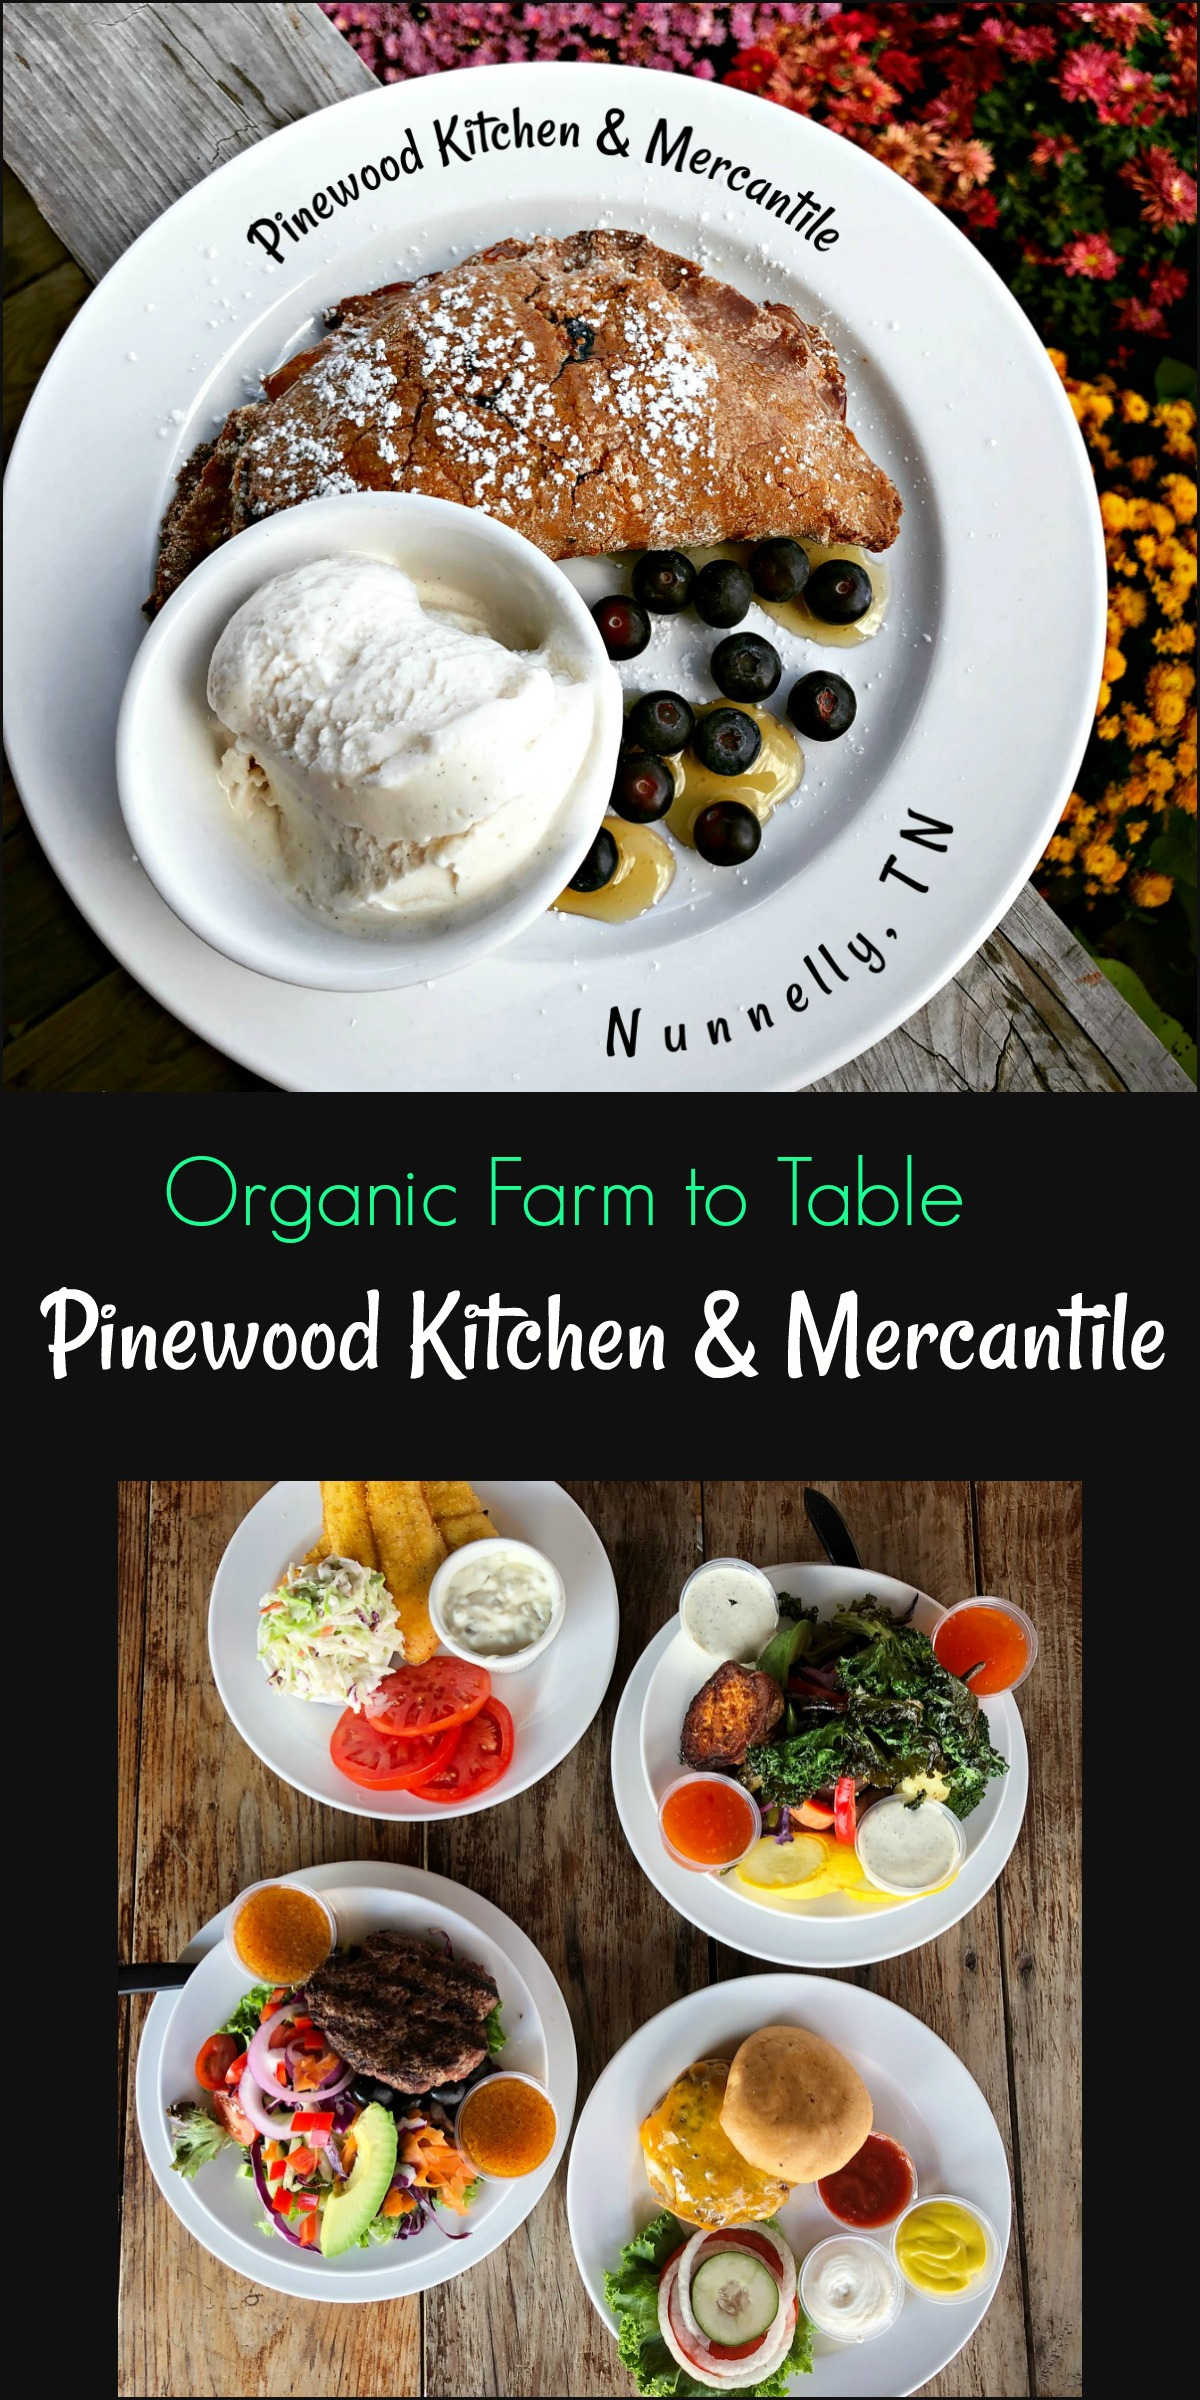 Farm to Table Organic food Pinewood Kitchen and Mercantile, Nunnelly, TN from Spinach Tiger